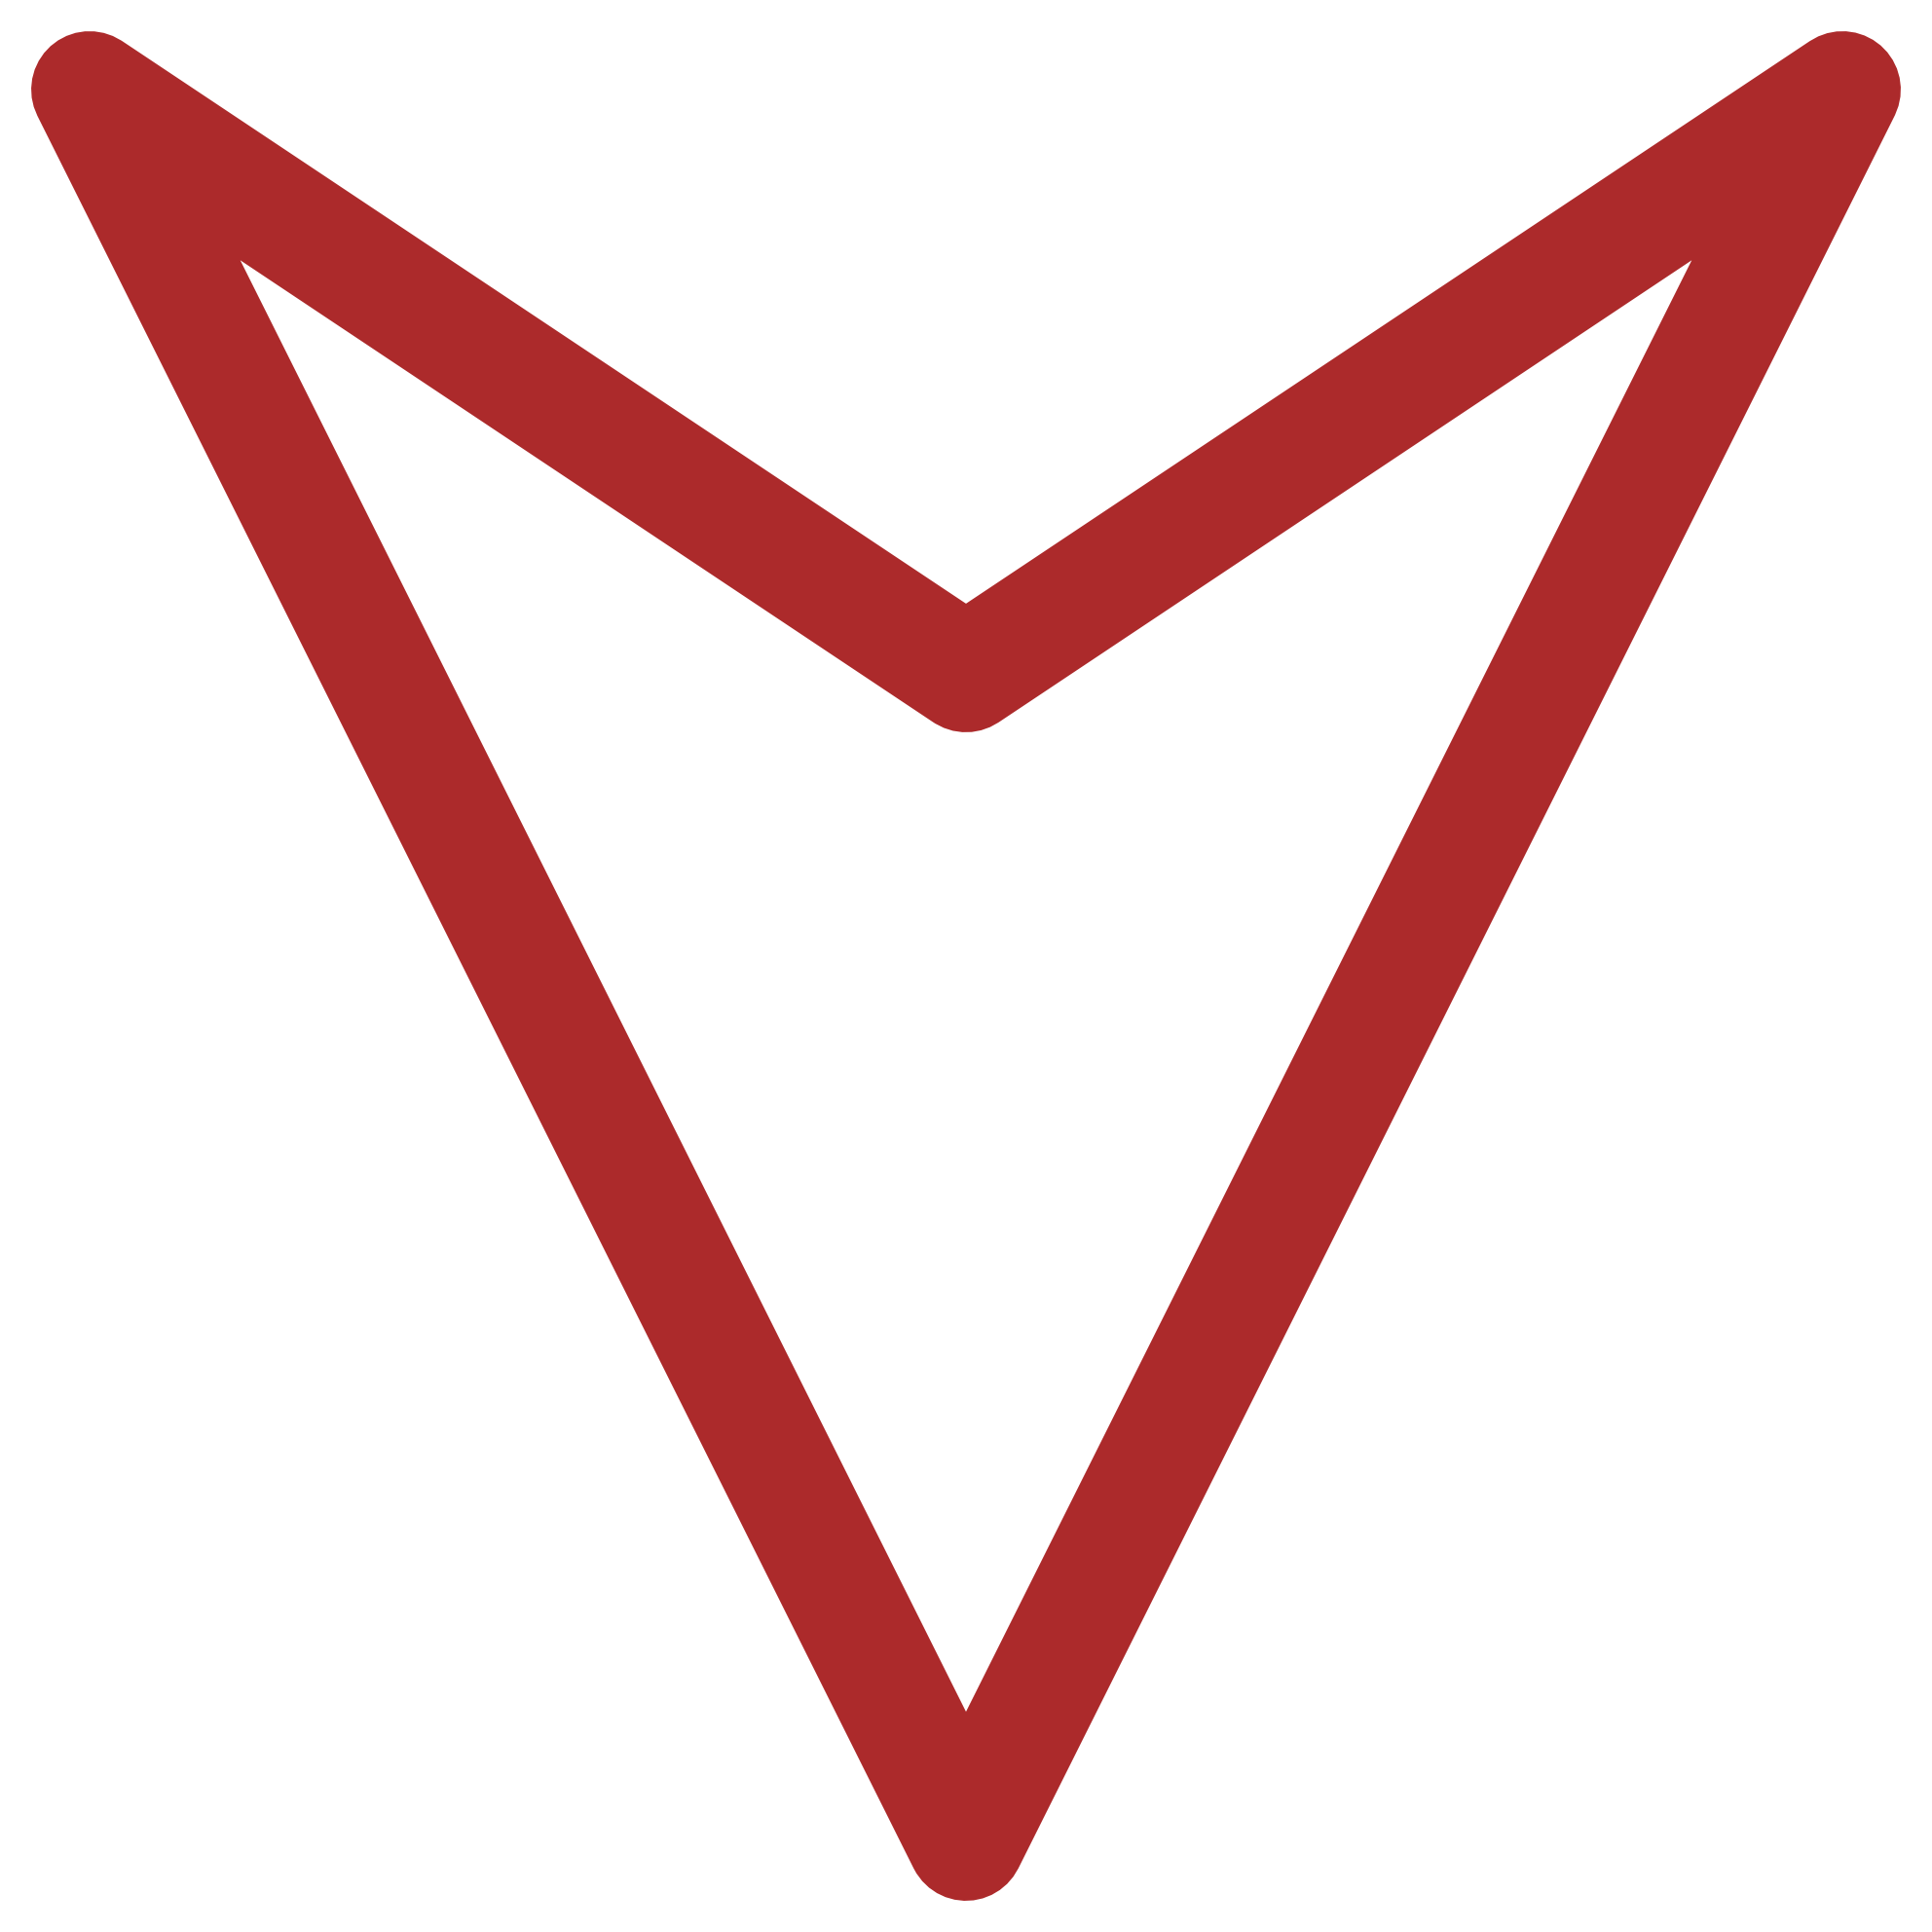 .png arrow. Download free red png